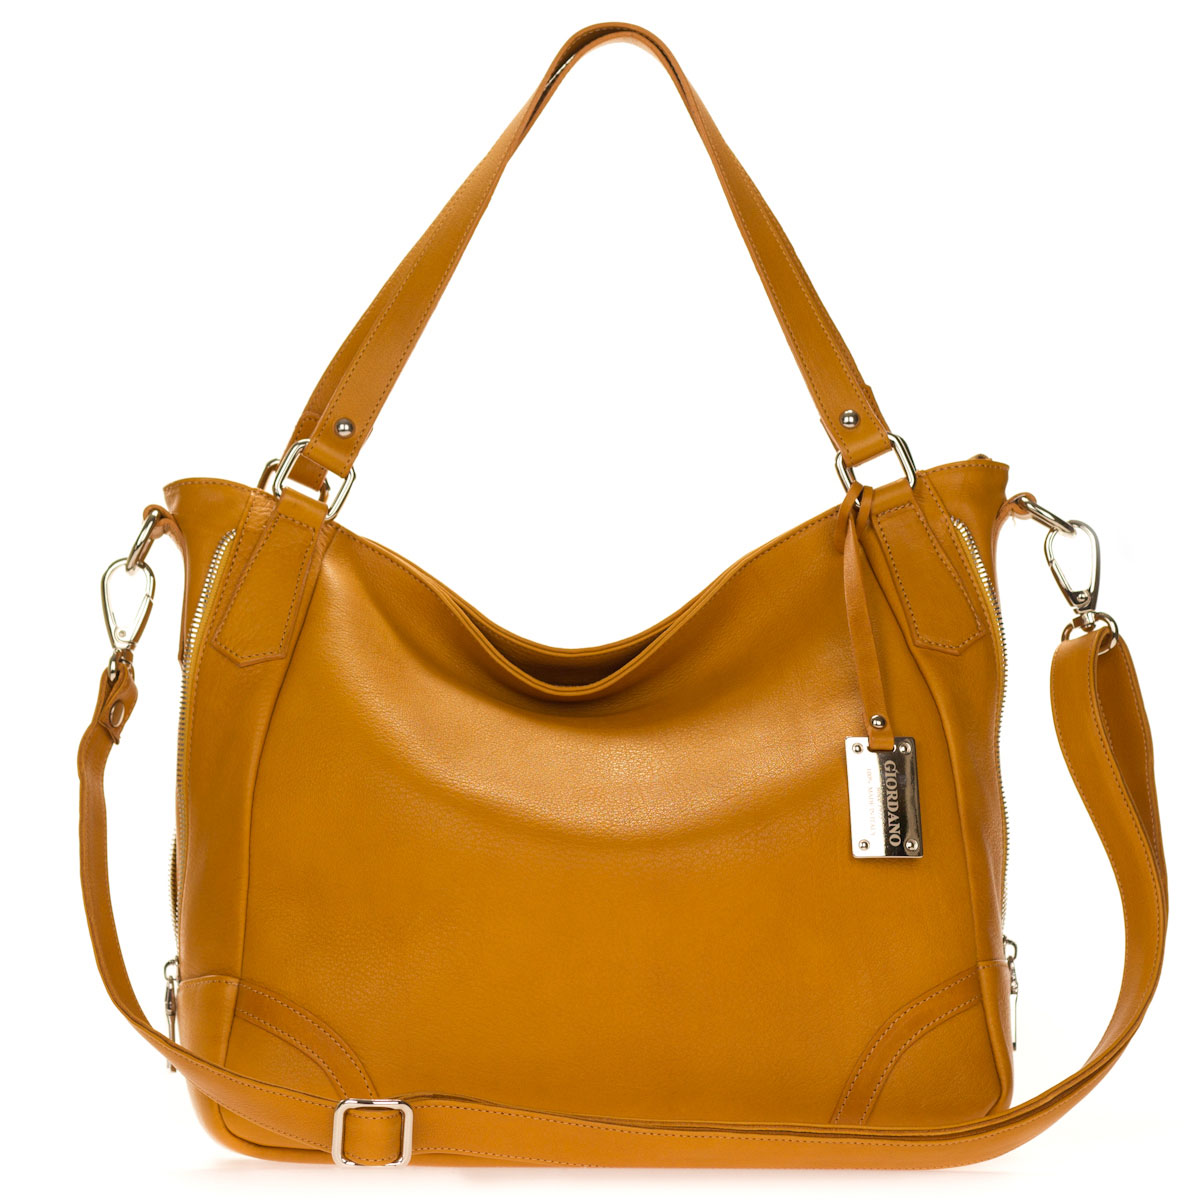 Giordano Italian Made Tan Leather Large Shopper Tote Handbag